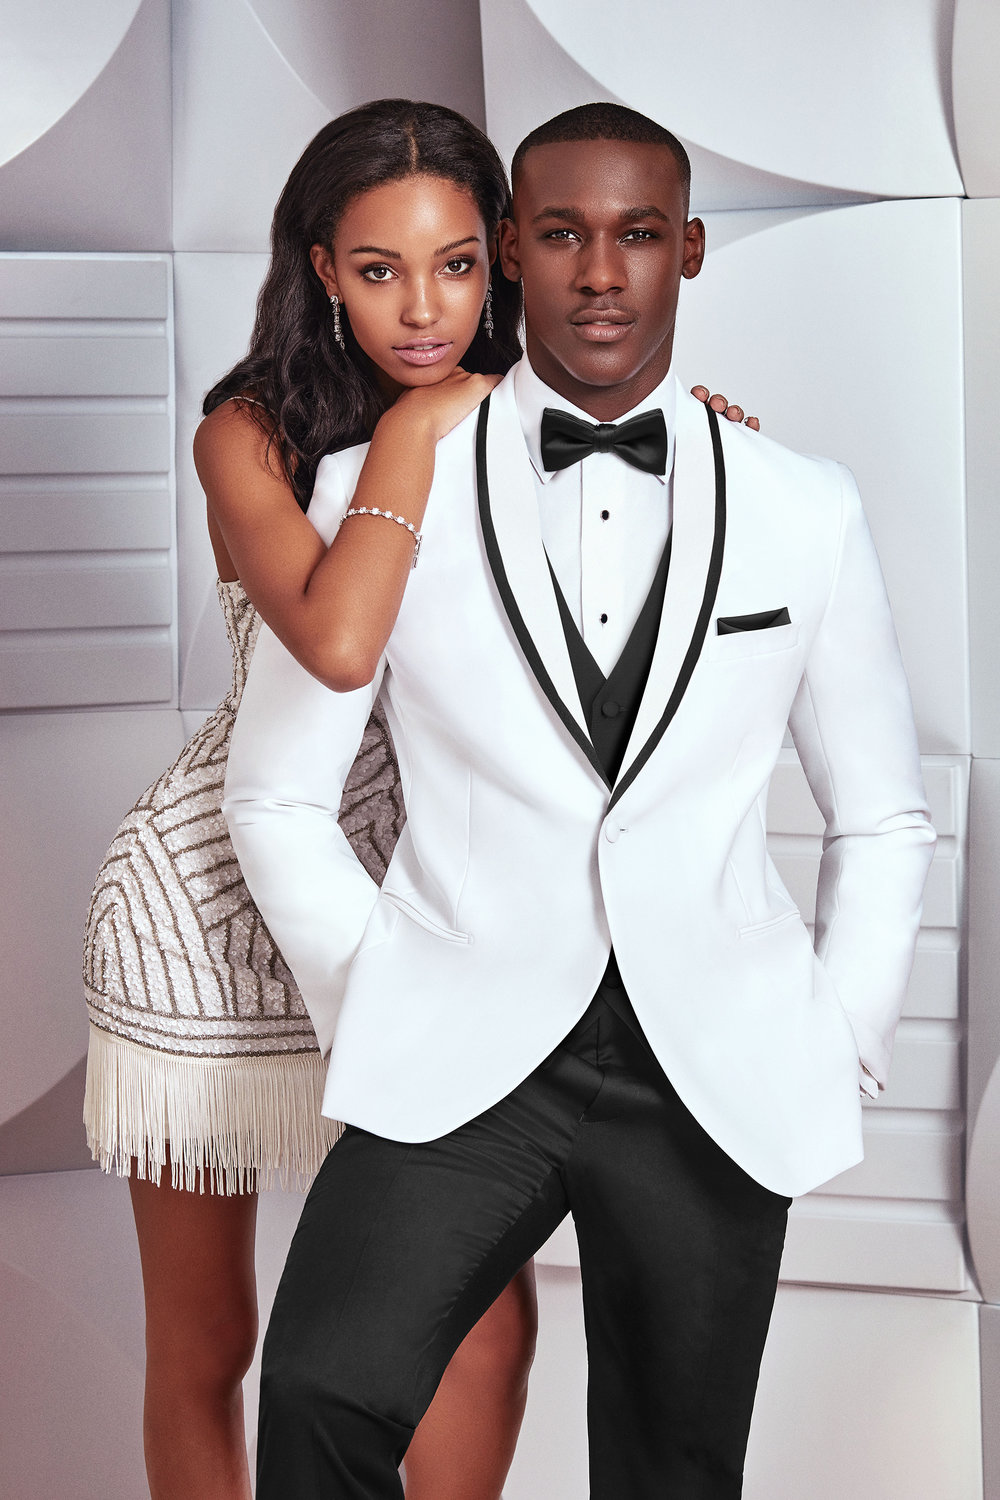 Formal White Tuxedo | available at Bride To Be Couture | 6040 Fair Oaks Blvd. Carmichael, CA 95608 | 916.972.8223 | @bridetobecouture